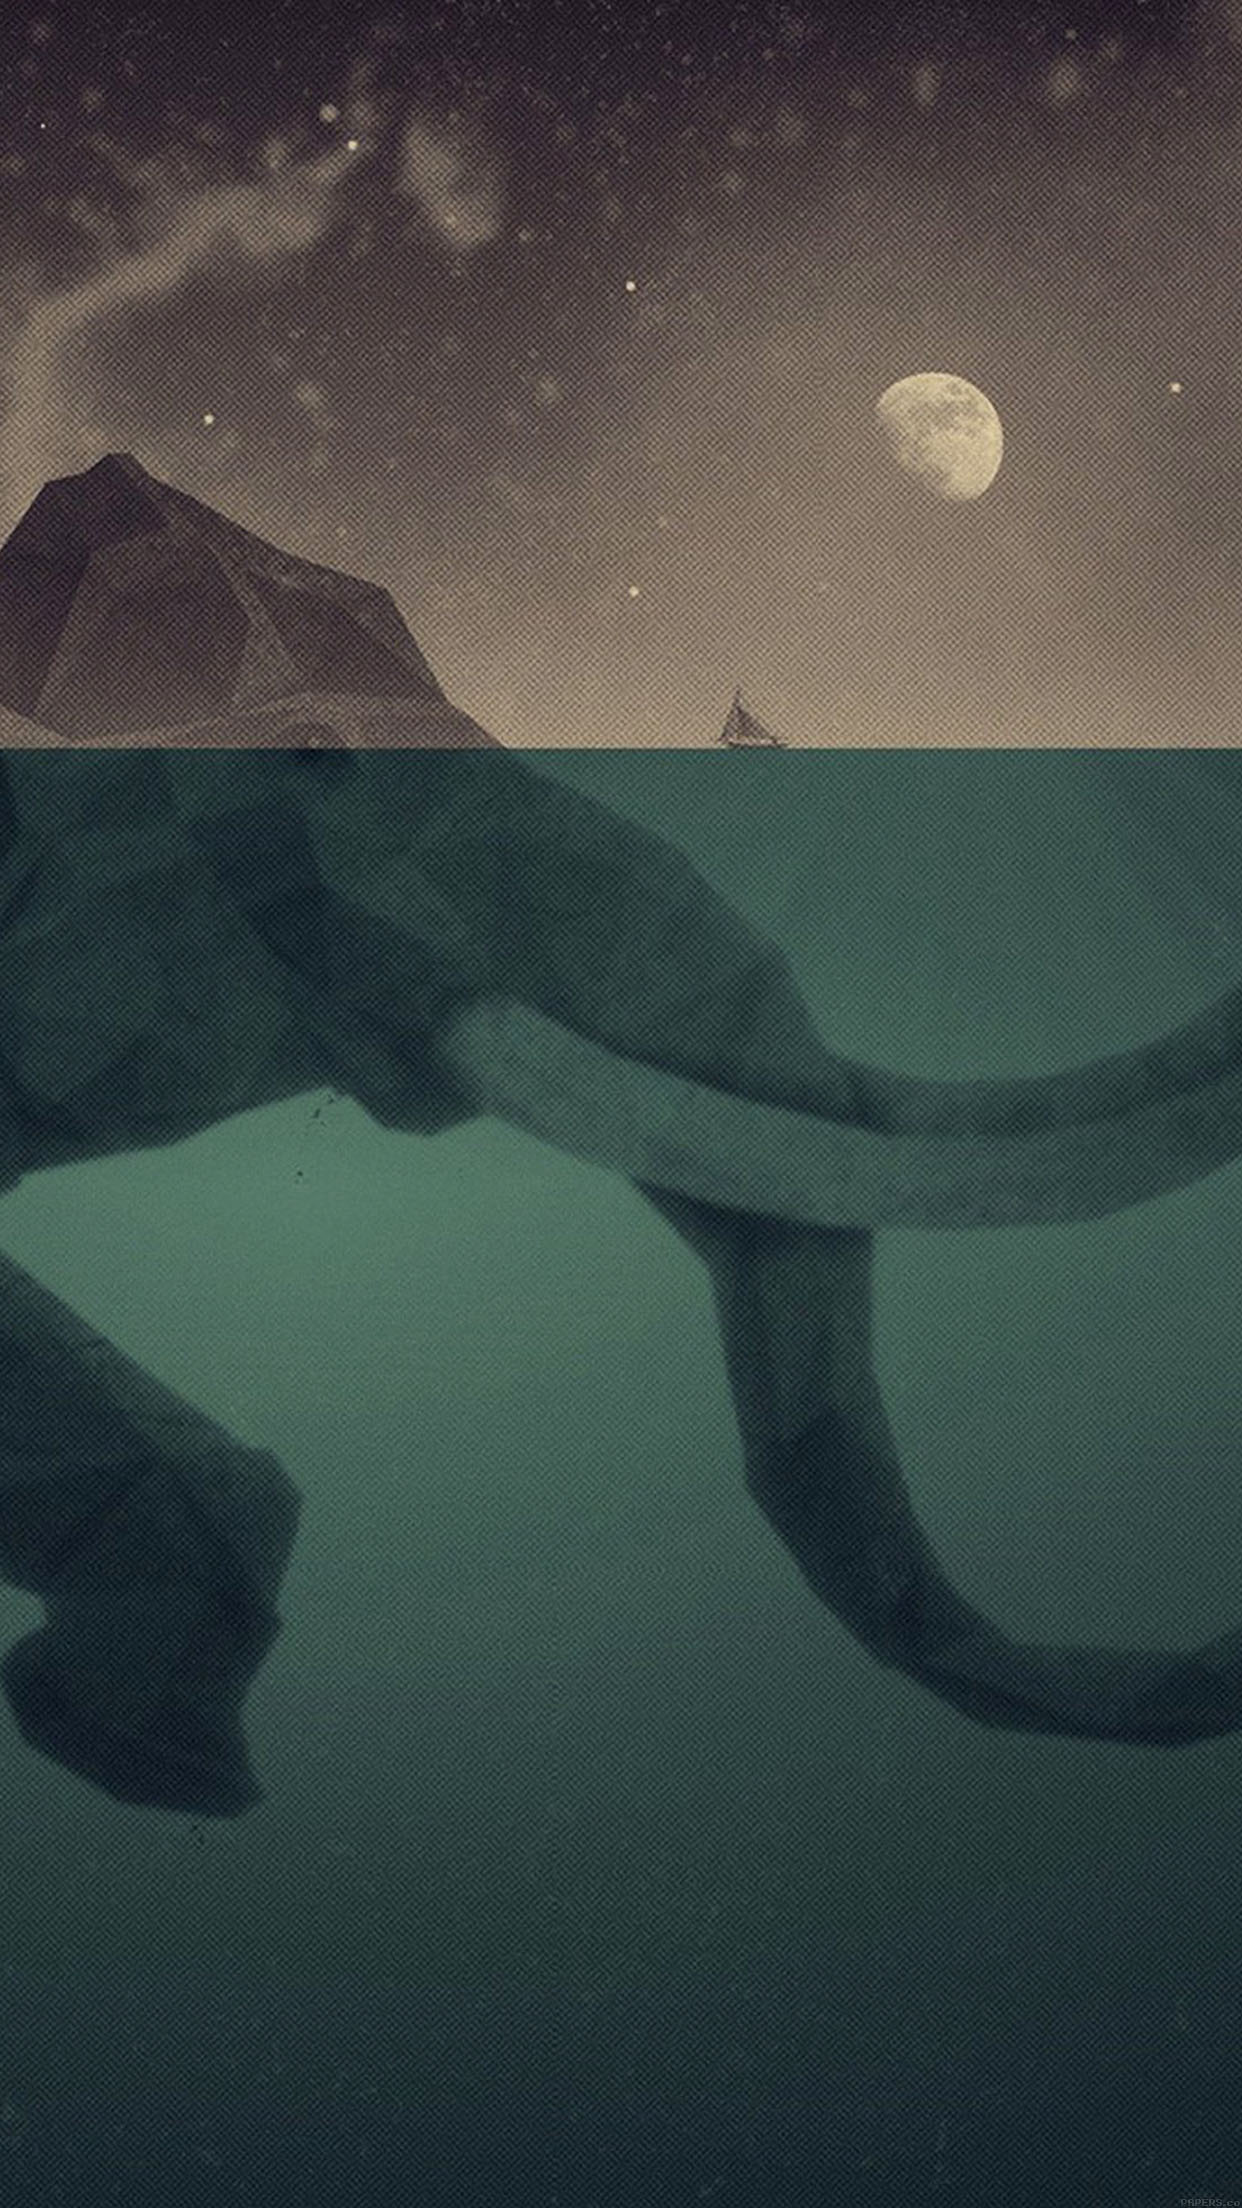 Download Illustrated animal kingdom wallpapers for iPad and iPhone